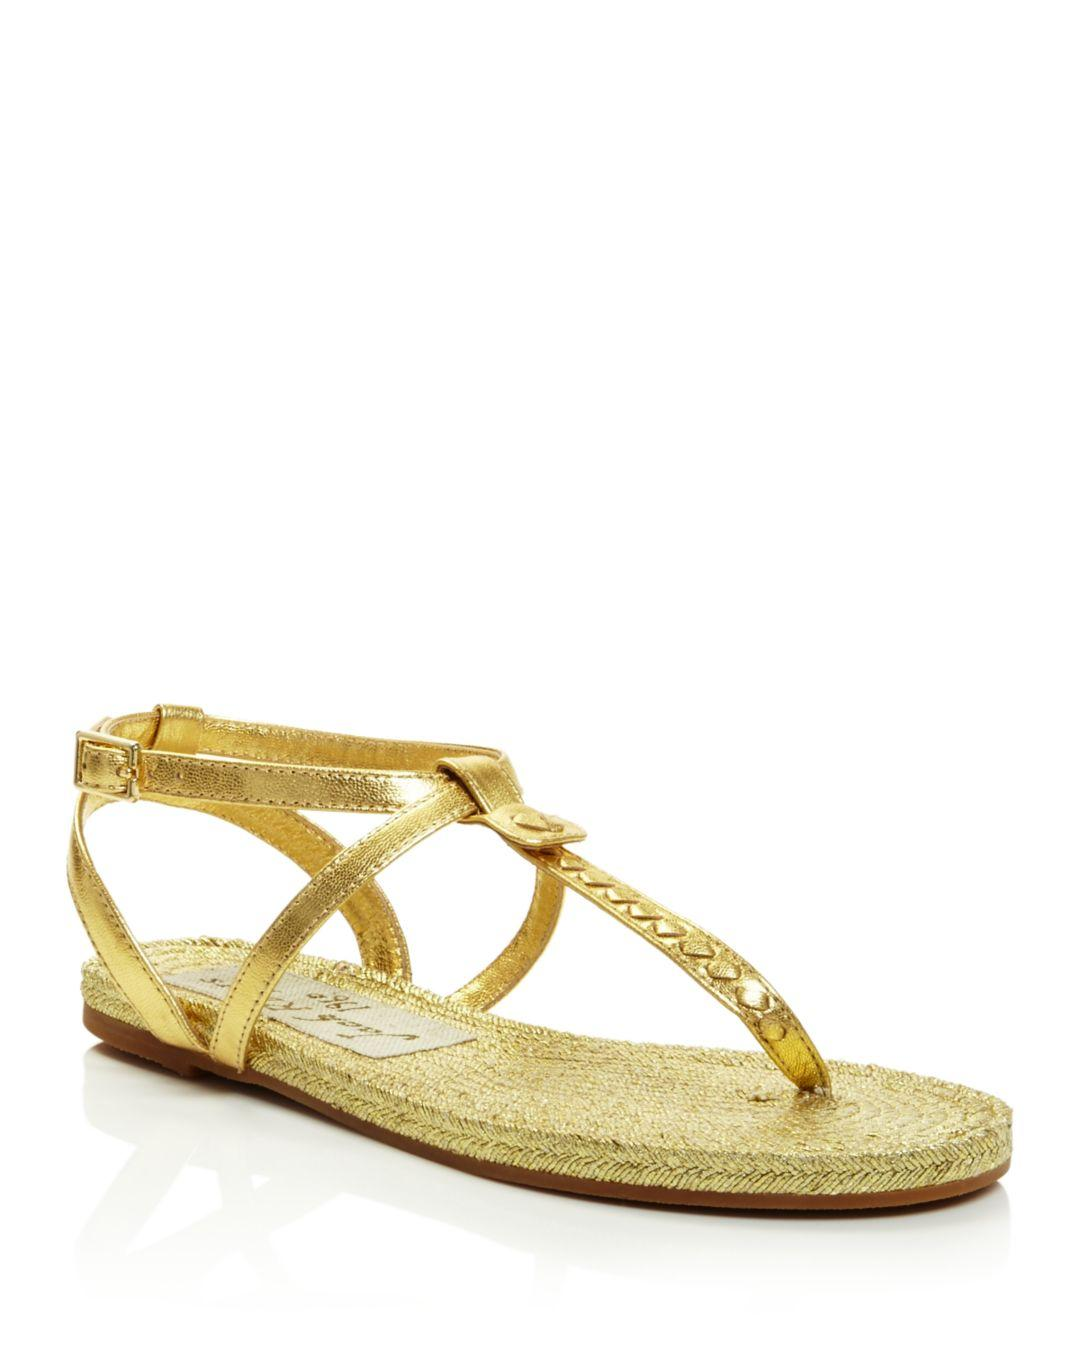 76ee49db1 Lyst - Jack Rogers Women s Evie Leather Flat Thong Sandals in Metallic